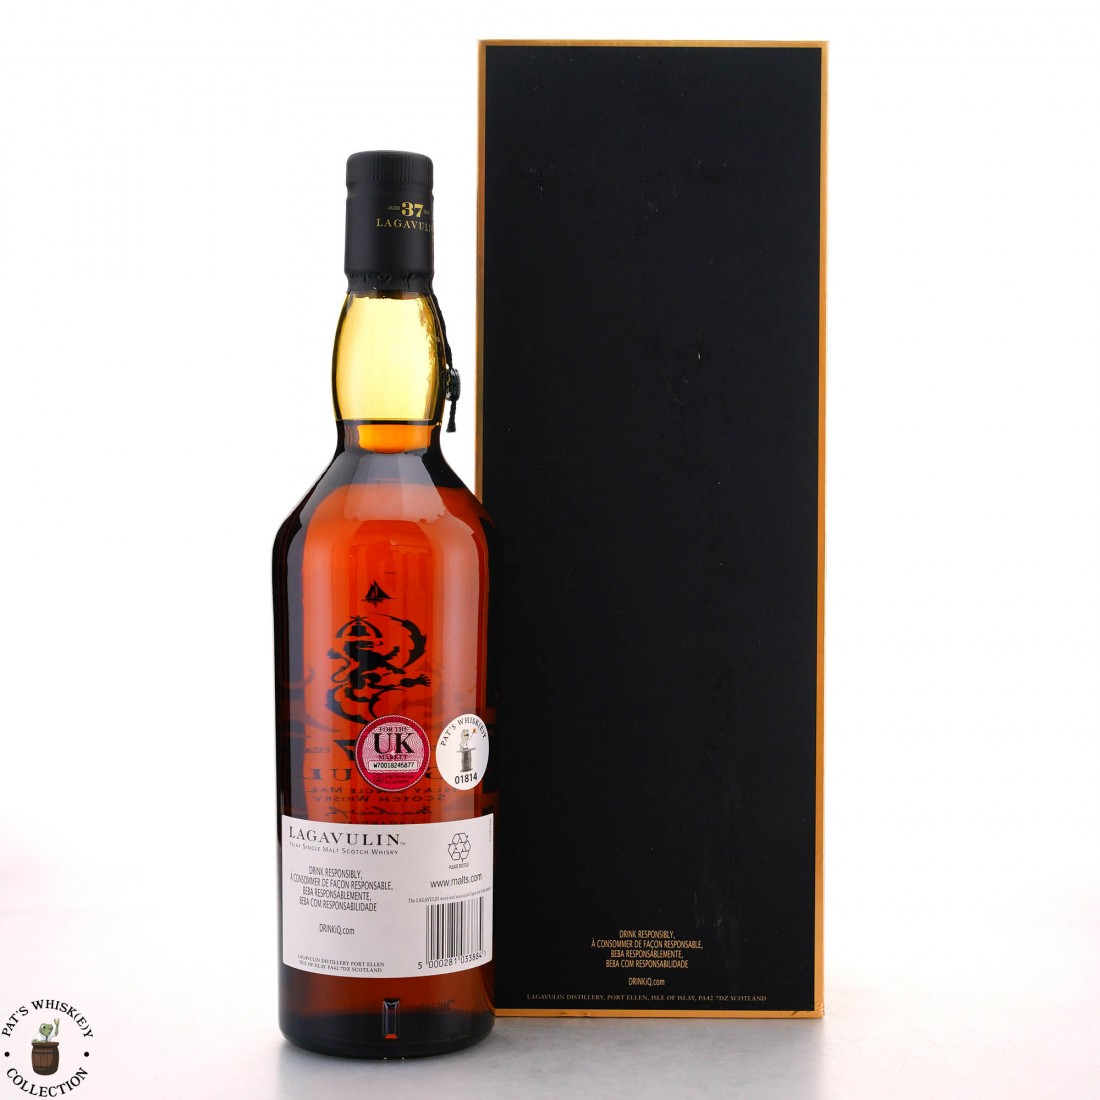 Lagavulin 1976 Cask Strength 37 Year Old